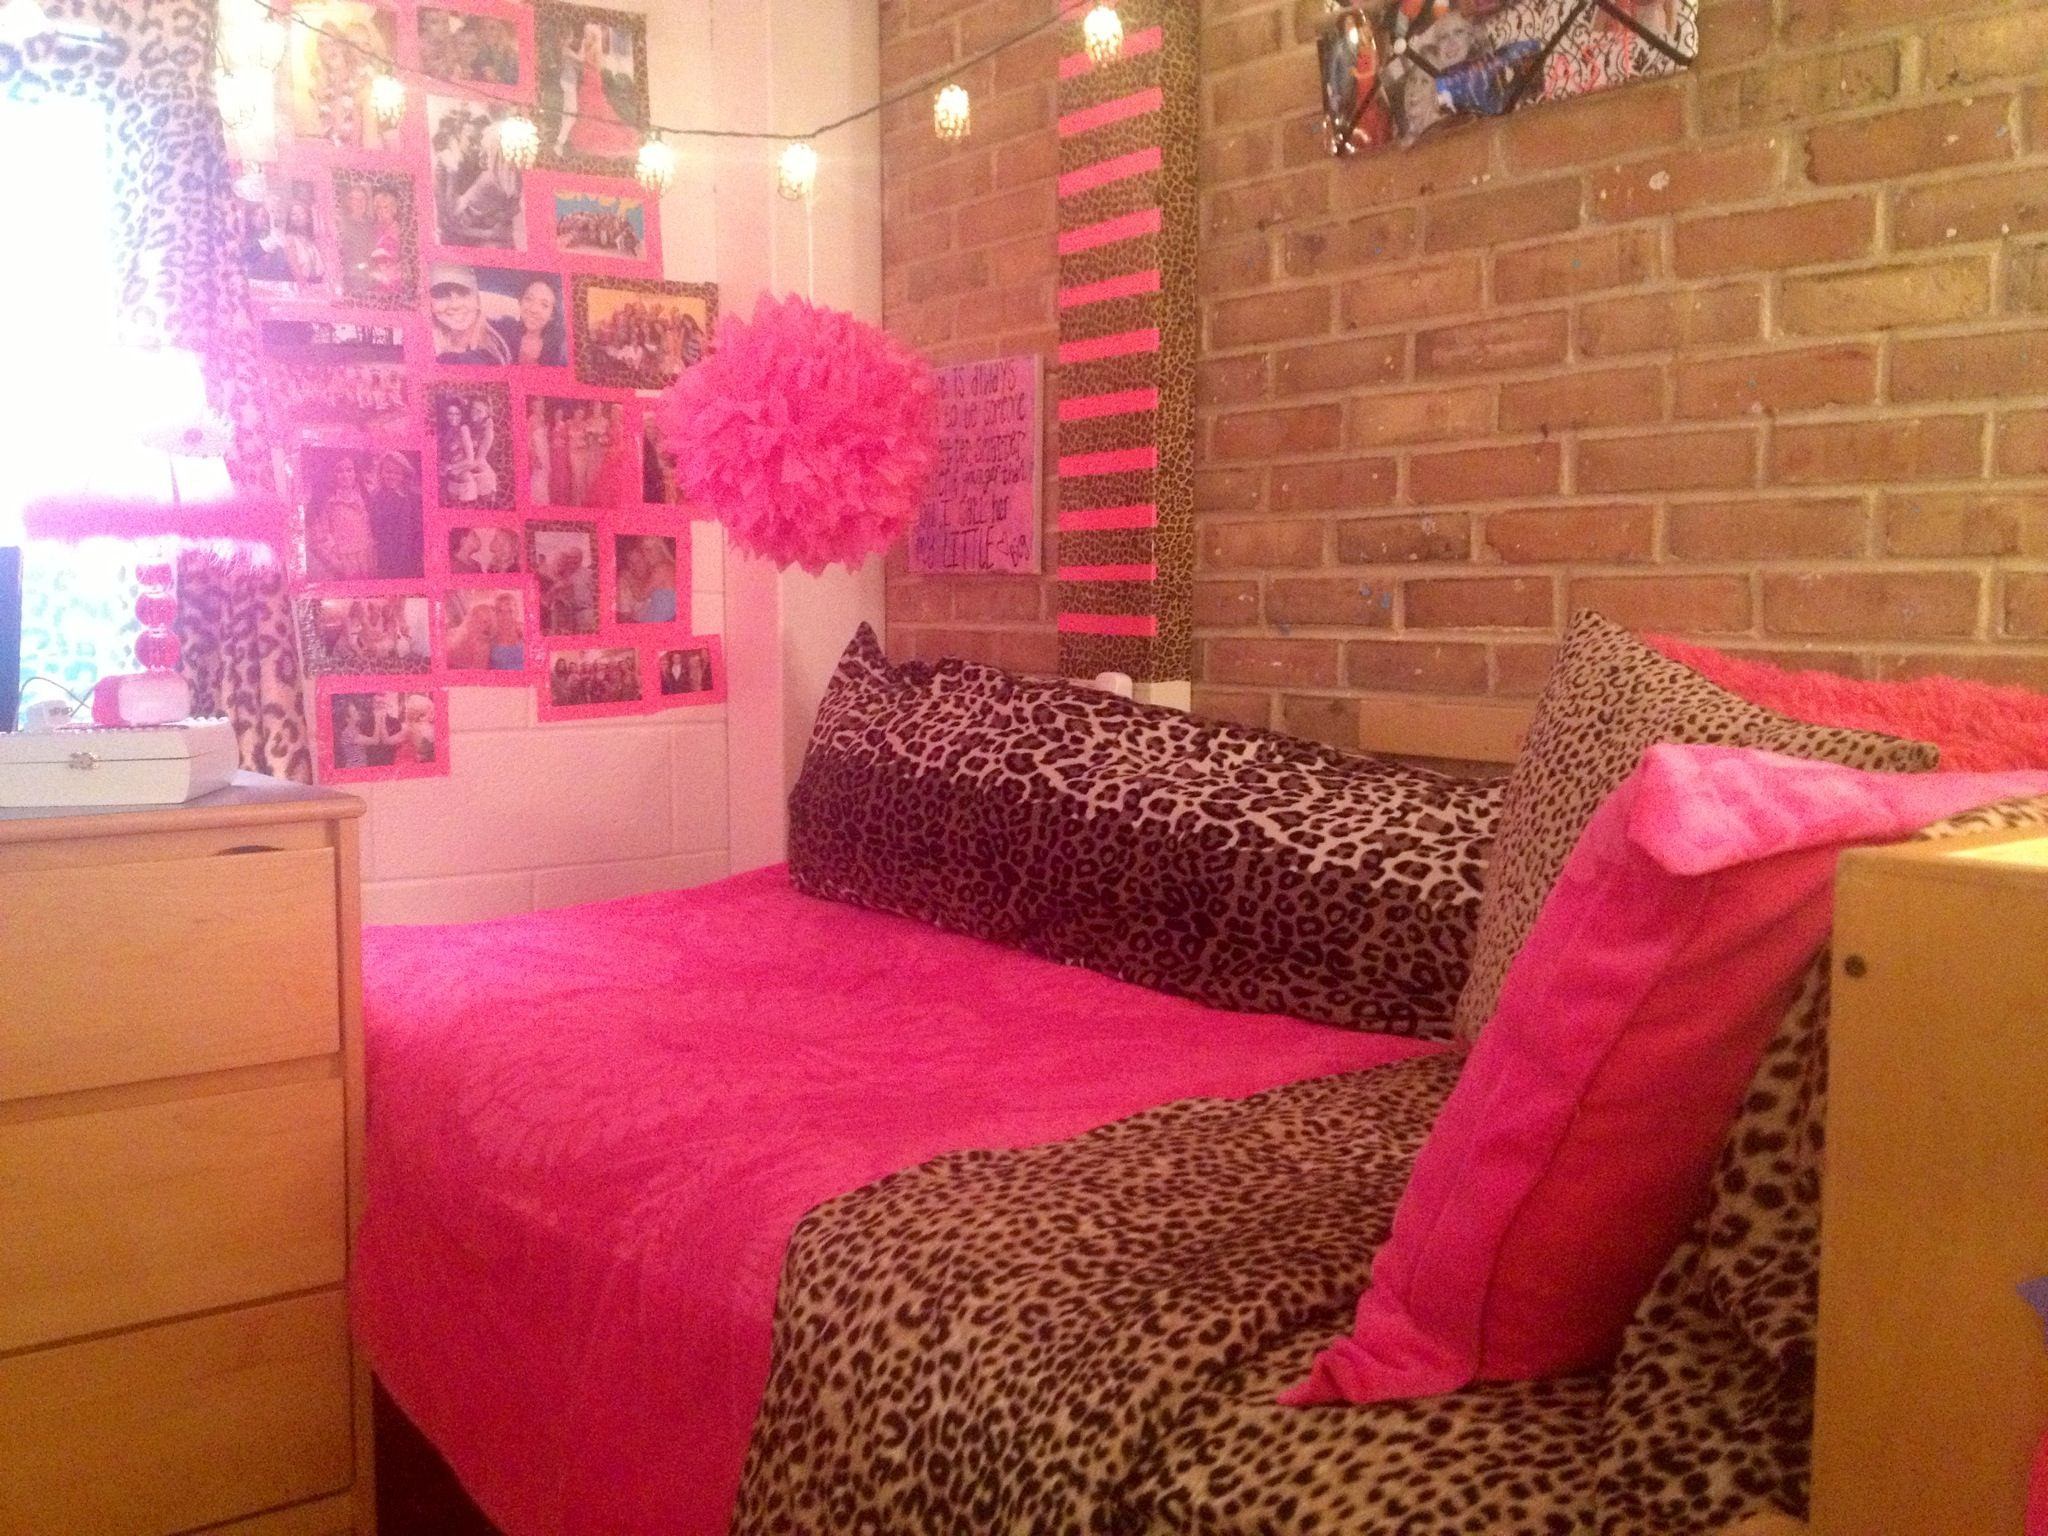 Decorating Ideas > Dorm Room Pink Cheetah Bright Lights  Awesome Ideas  ~ 152739_Seventeen Magazine Dorm Room Ideas